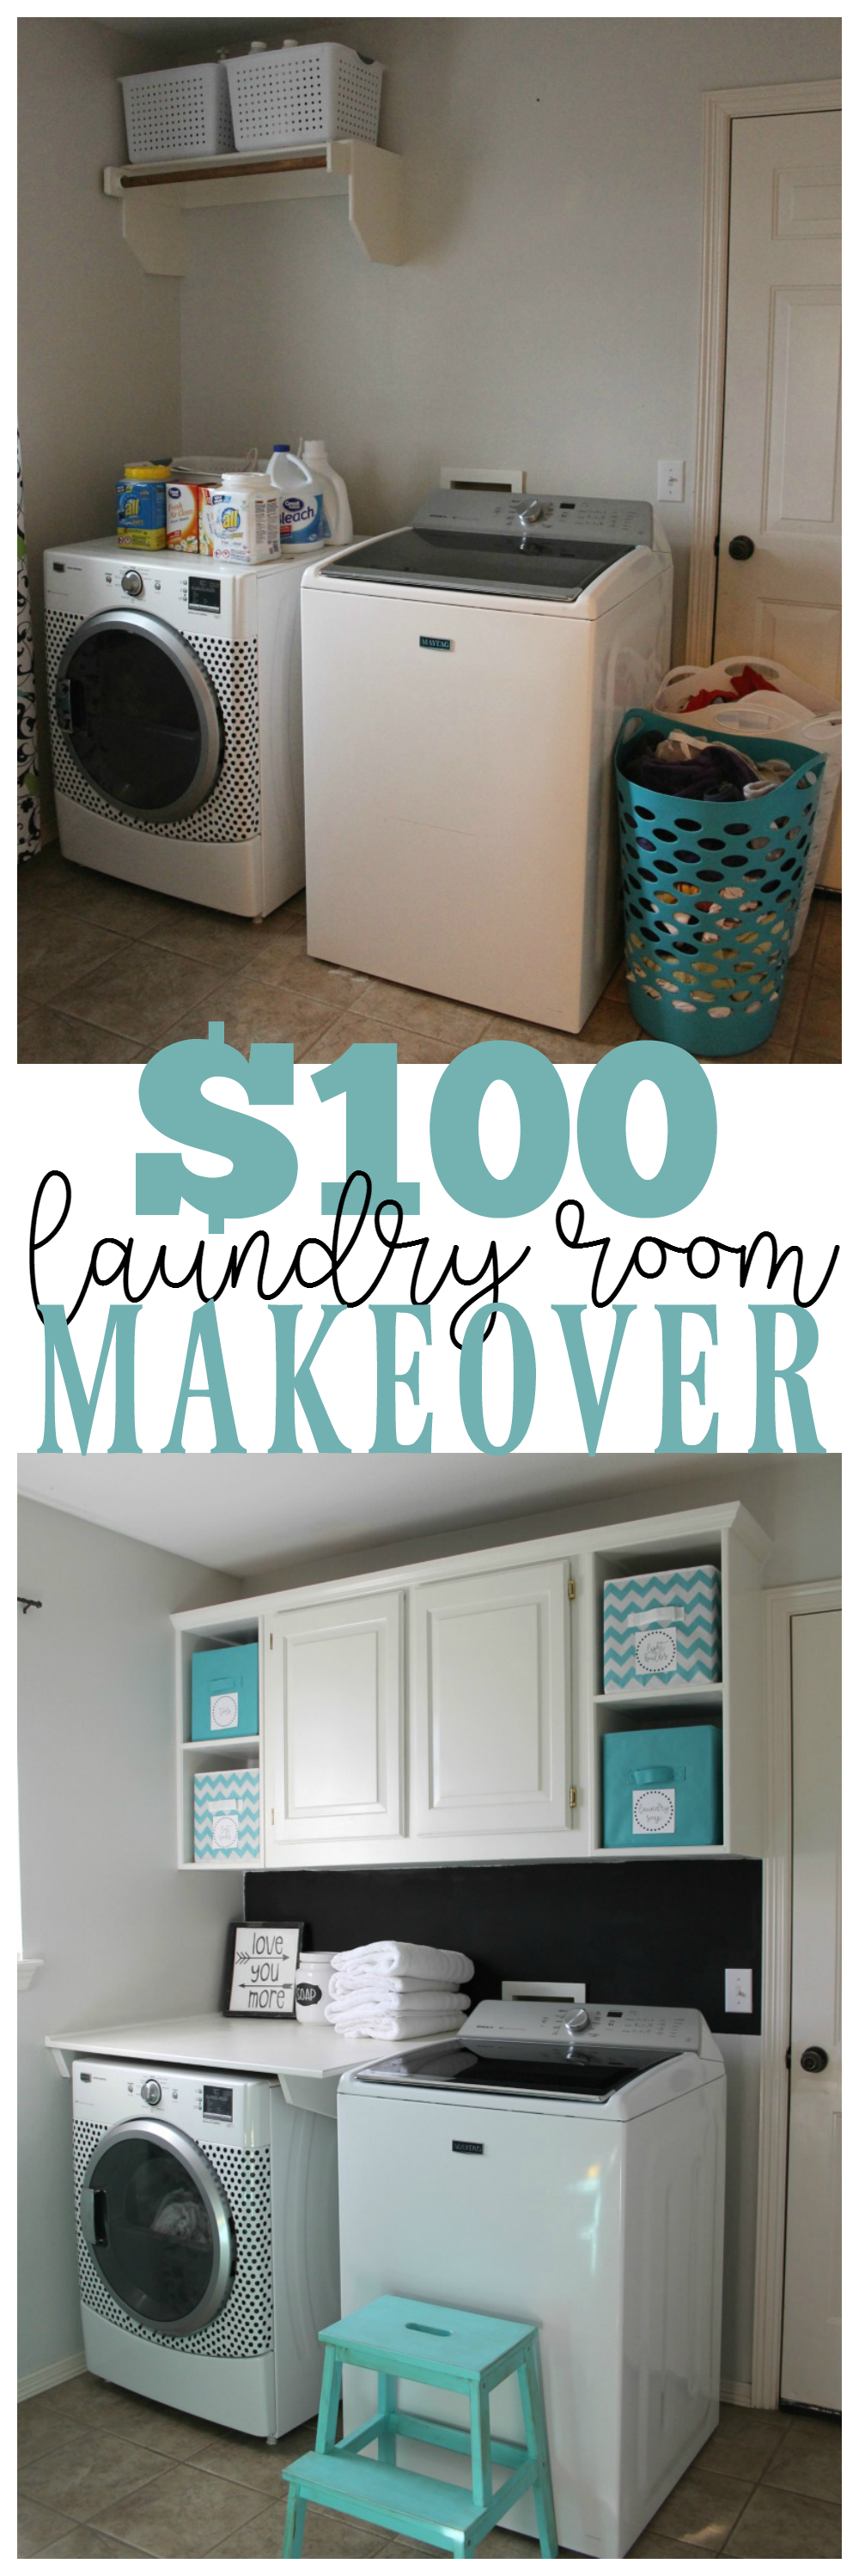 Room Makeovers laundry room makeover for under $100 | laundry rooms, laundry and